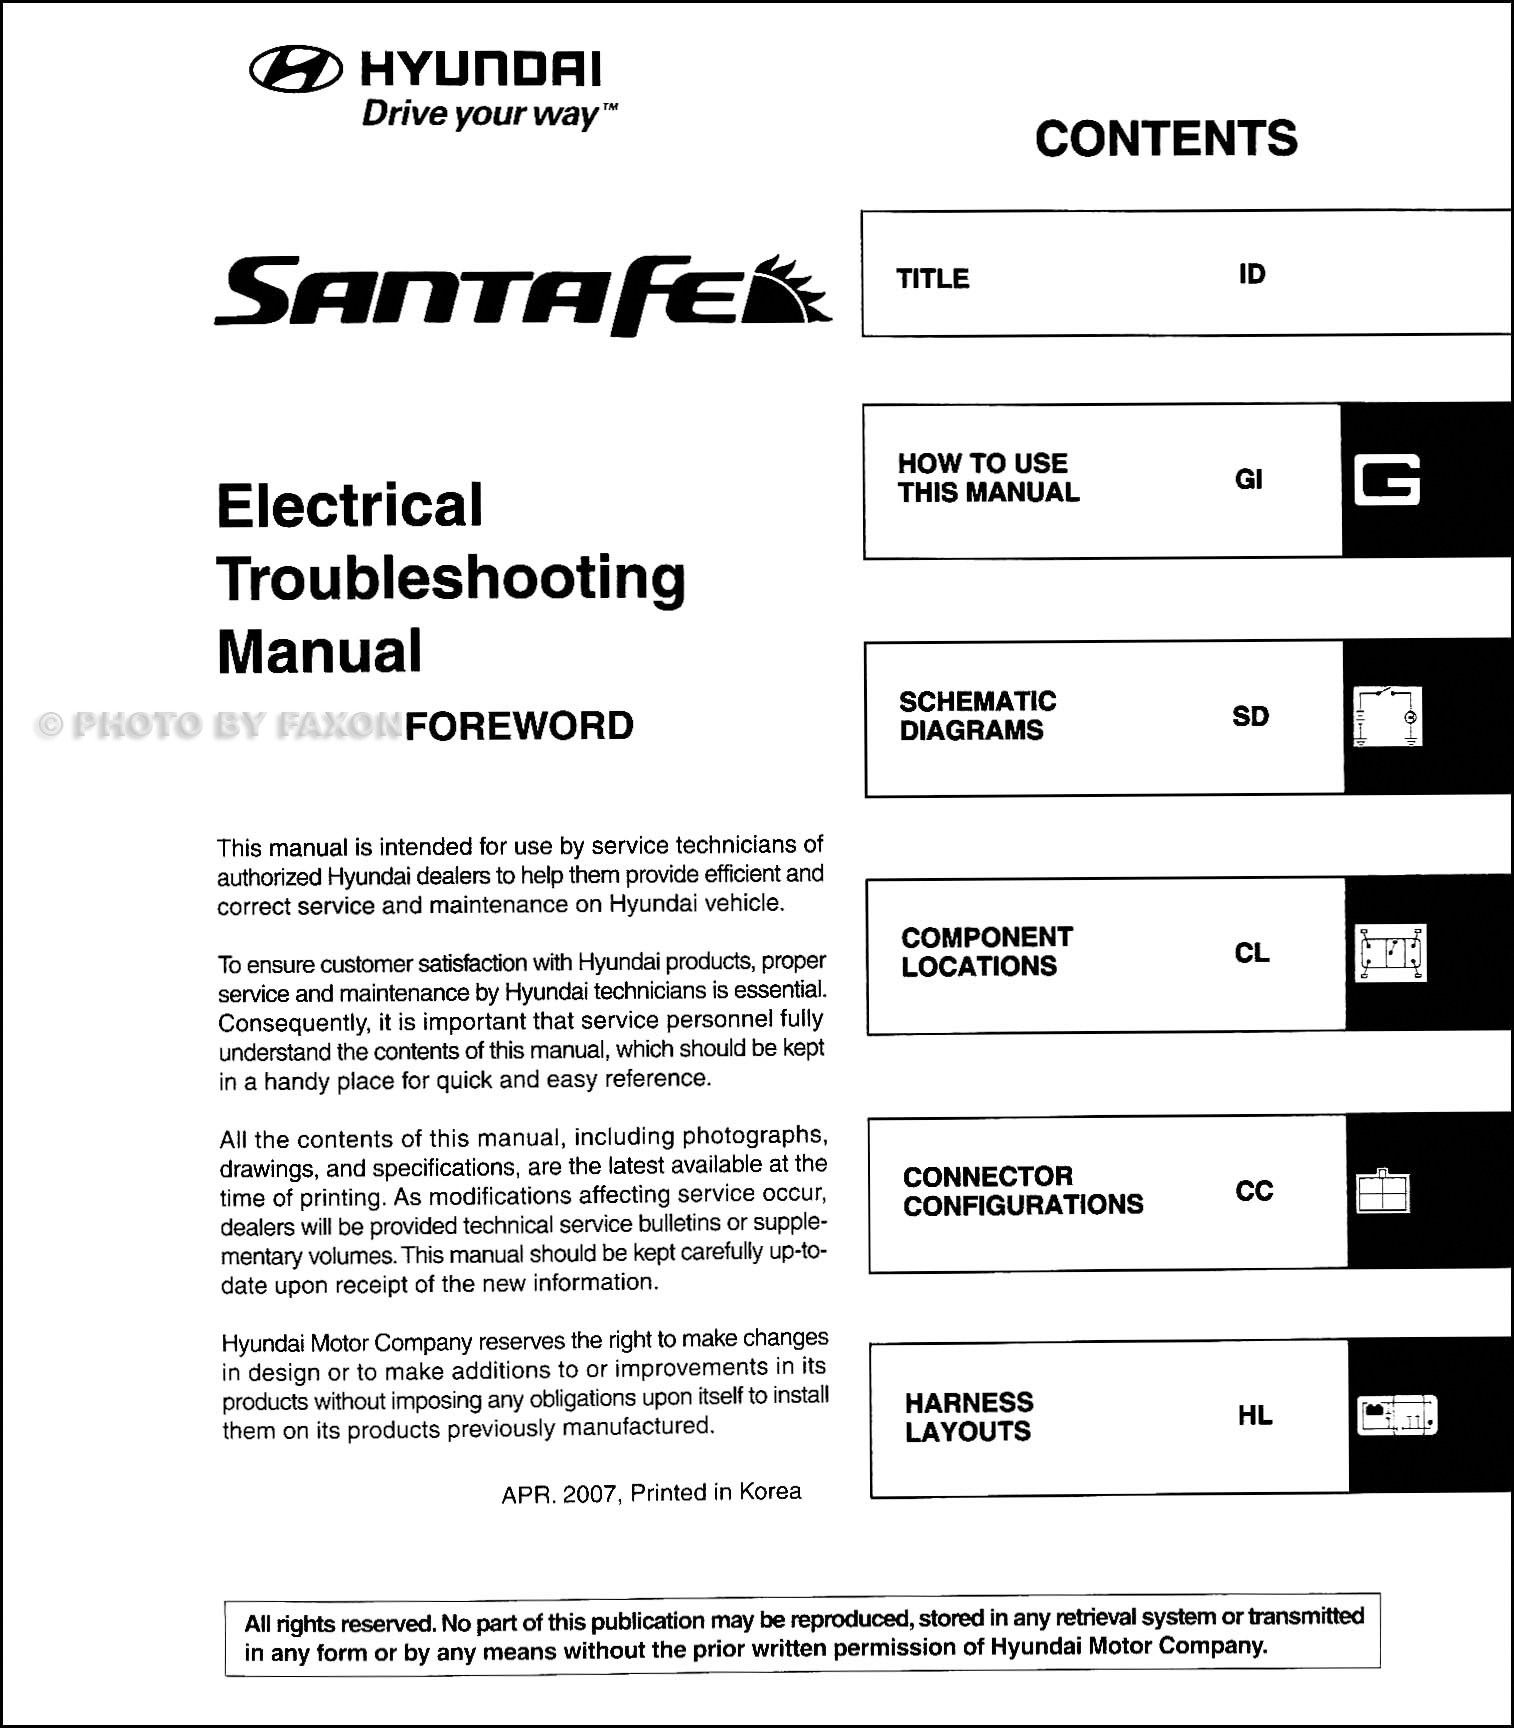 2008 hyundai santa fe wiring diagram dna fingerprinting electrical troubleshooting manual